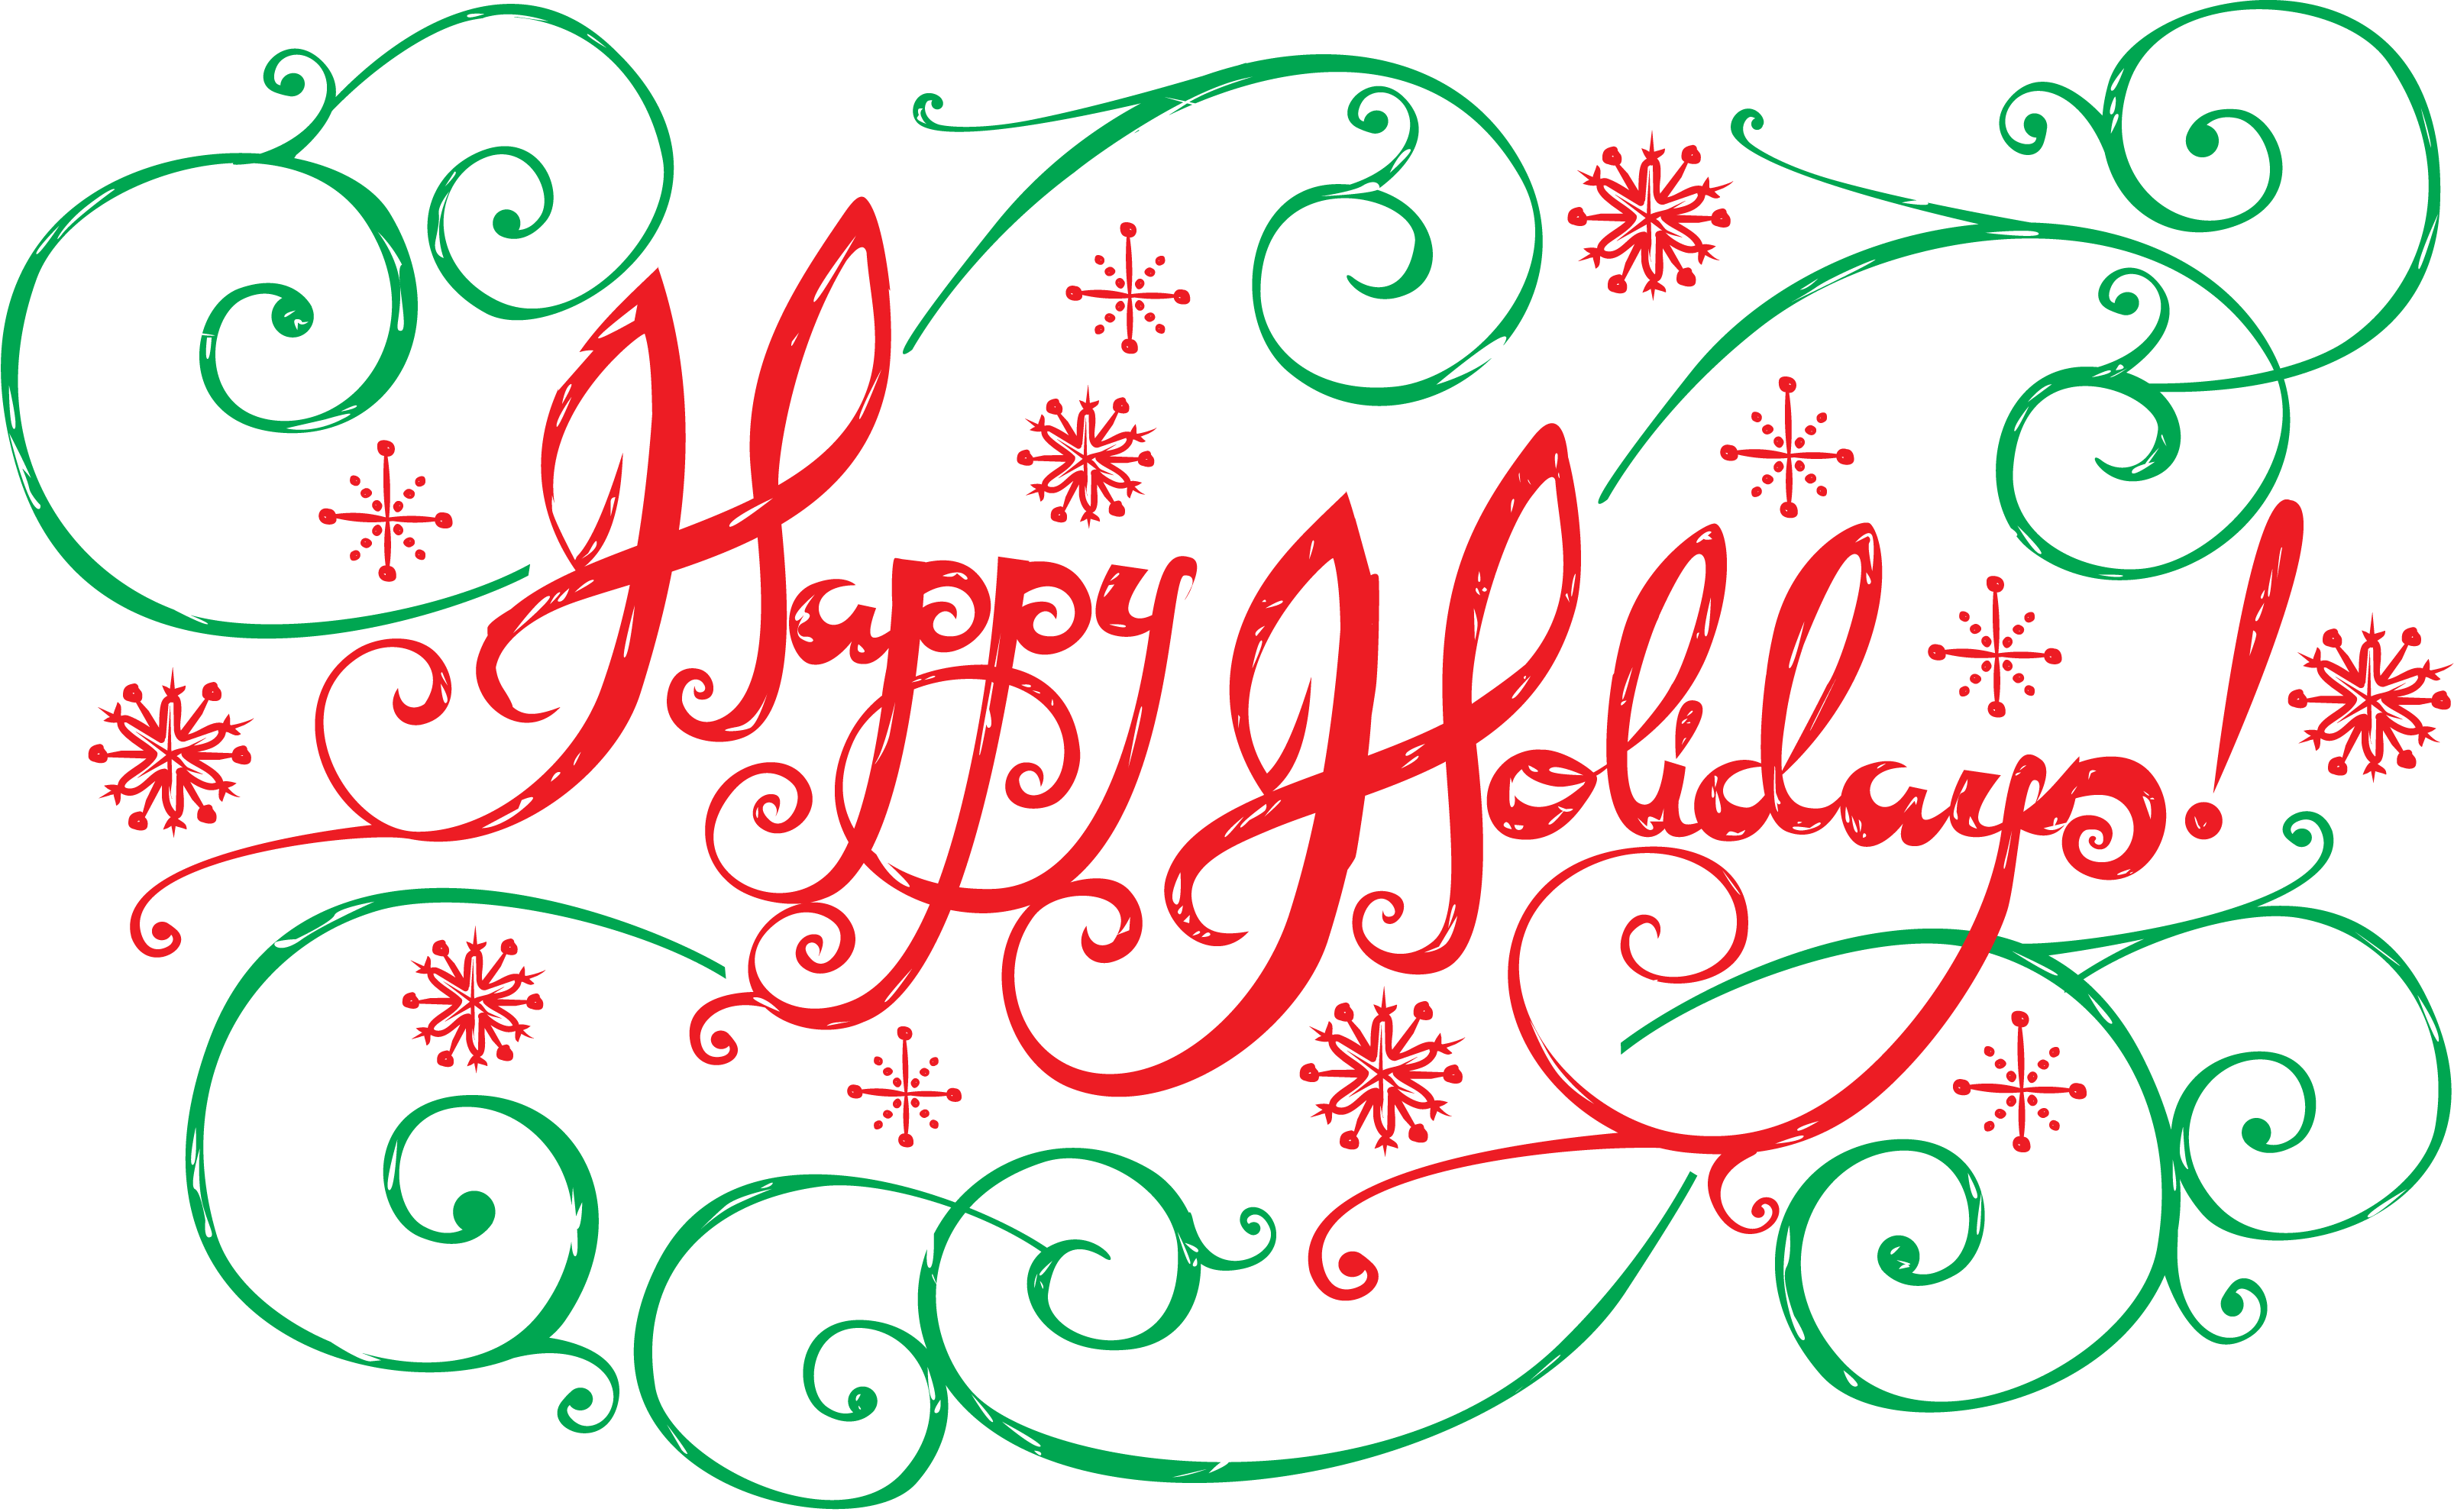 Happy Holidays Transparent PNG Pictures - Free Icons and ...